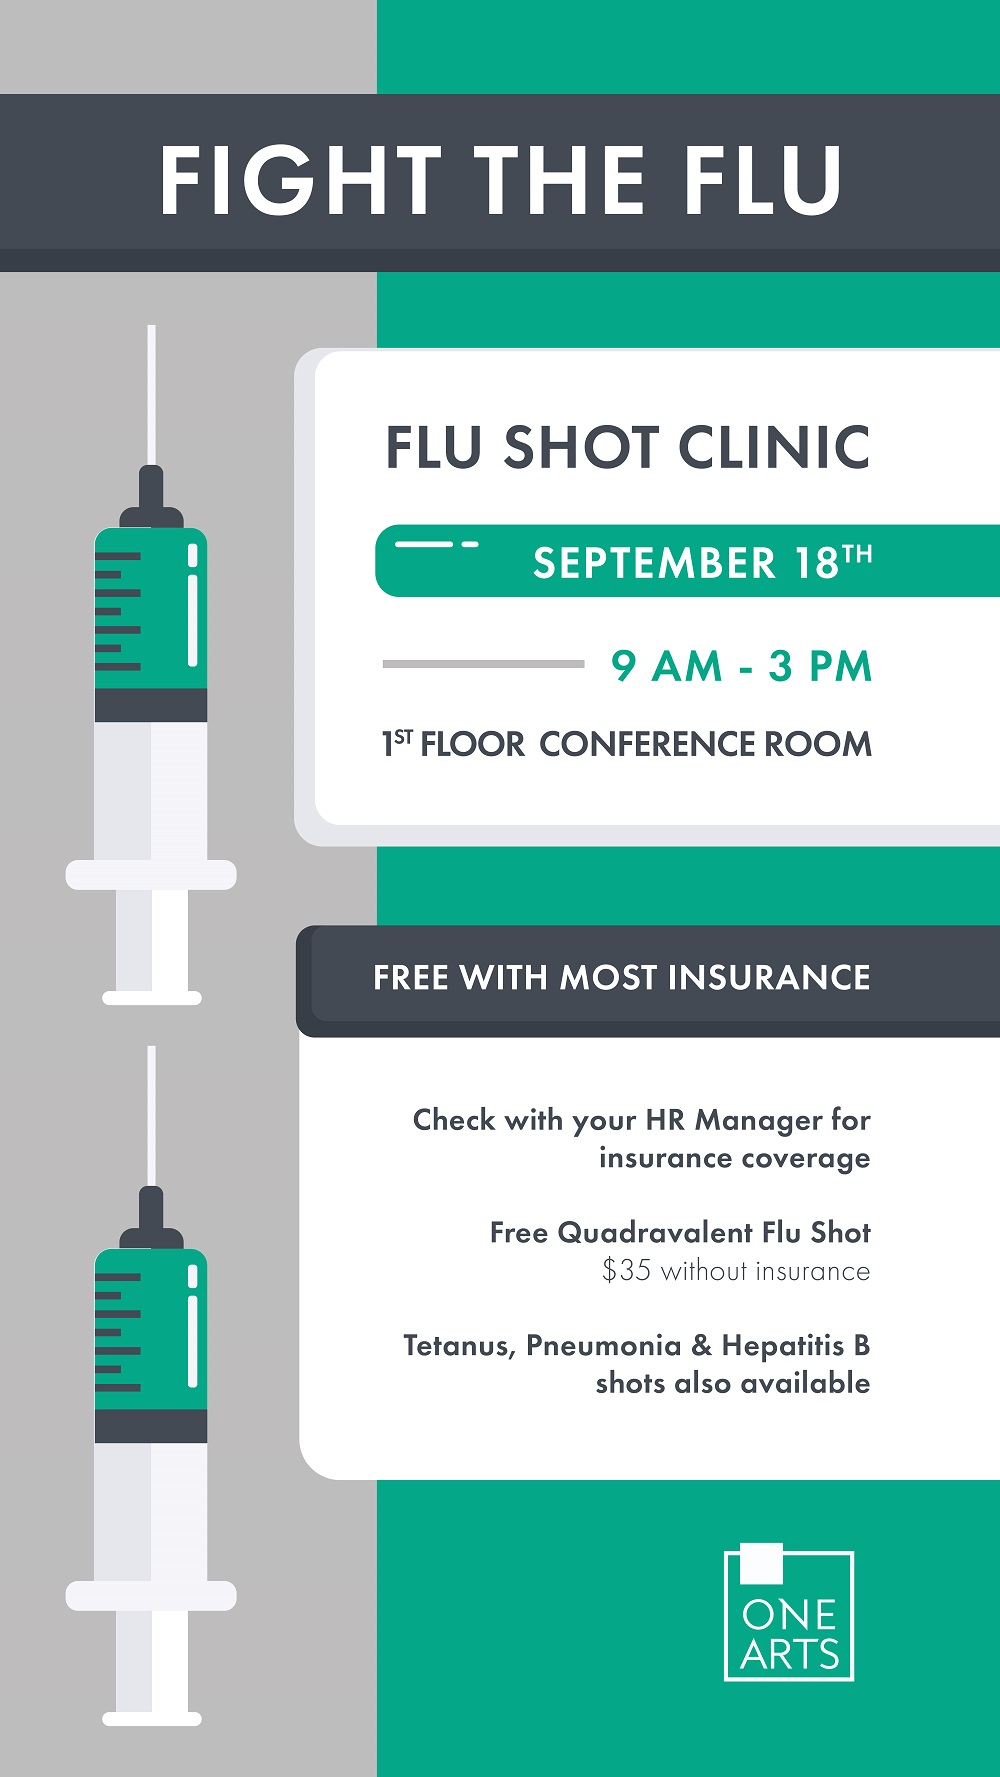 FluShot_1920x1080_updated-lr.jpg